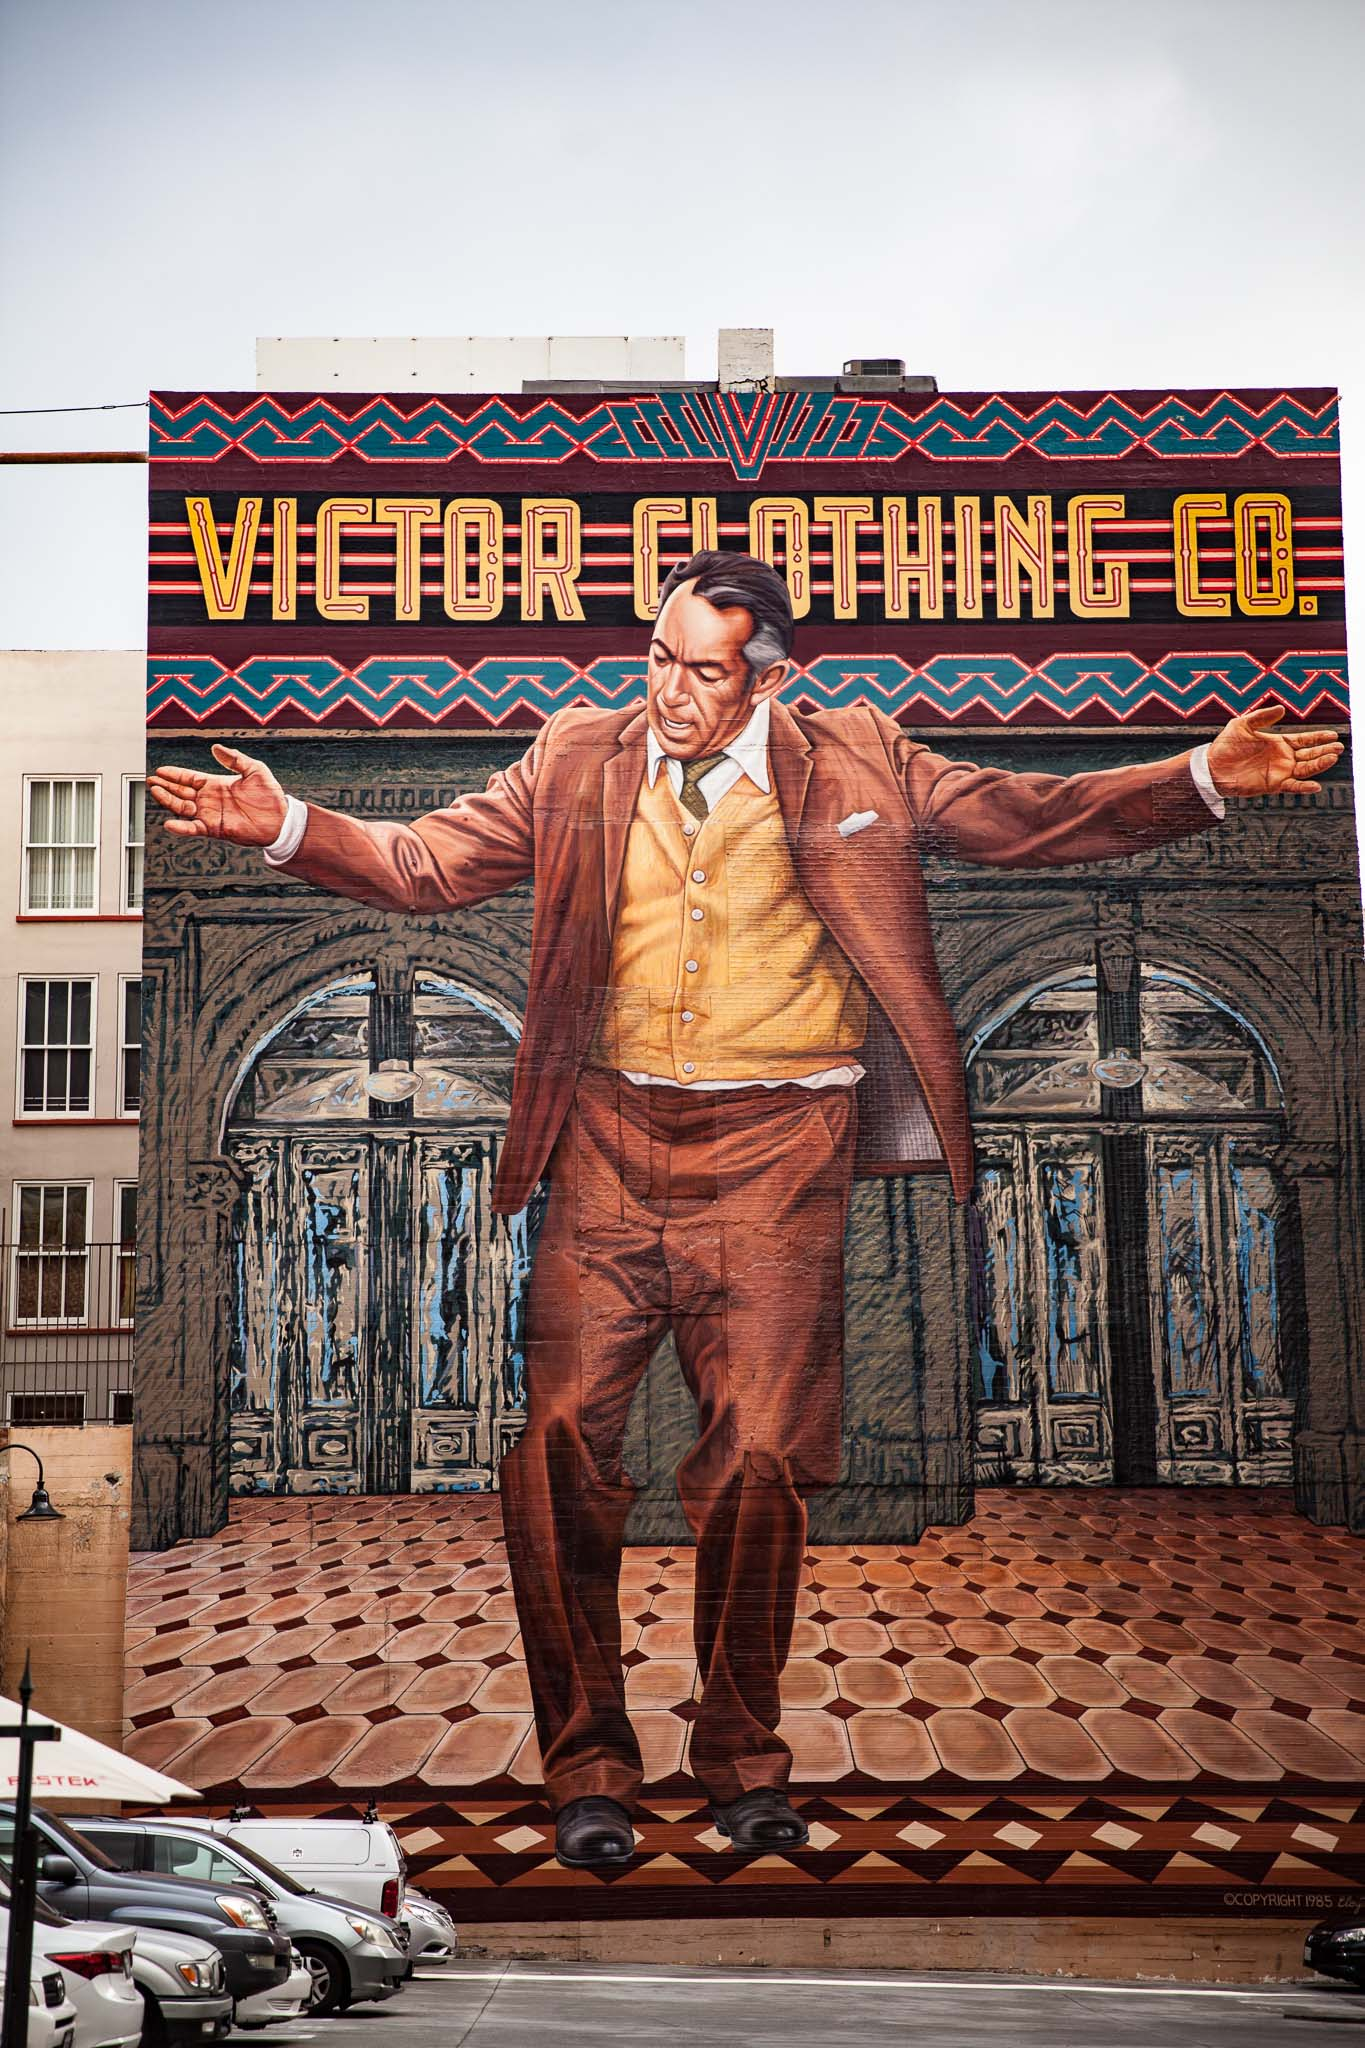 Mural of Anthony Queen w 3rd st LA. Los Angeles autrement visiter la ville à pied